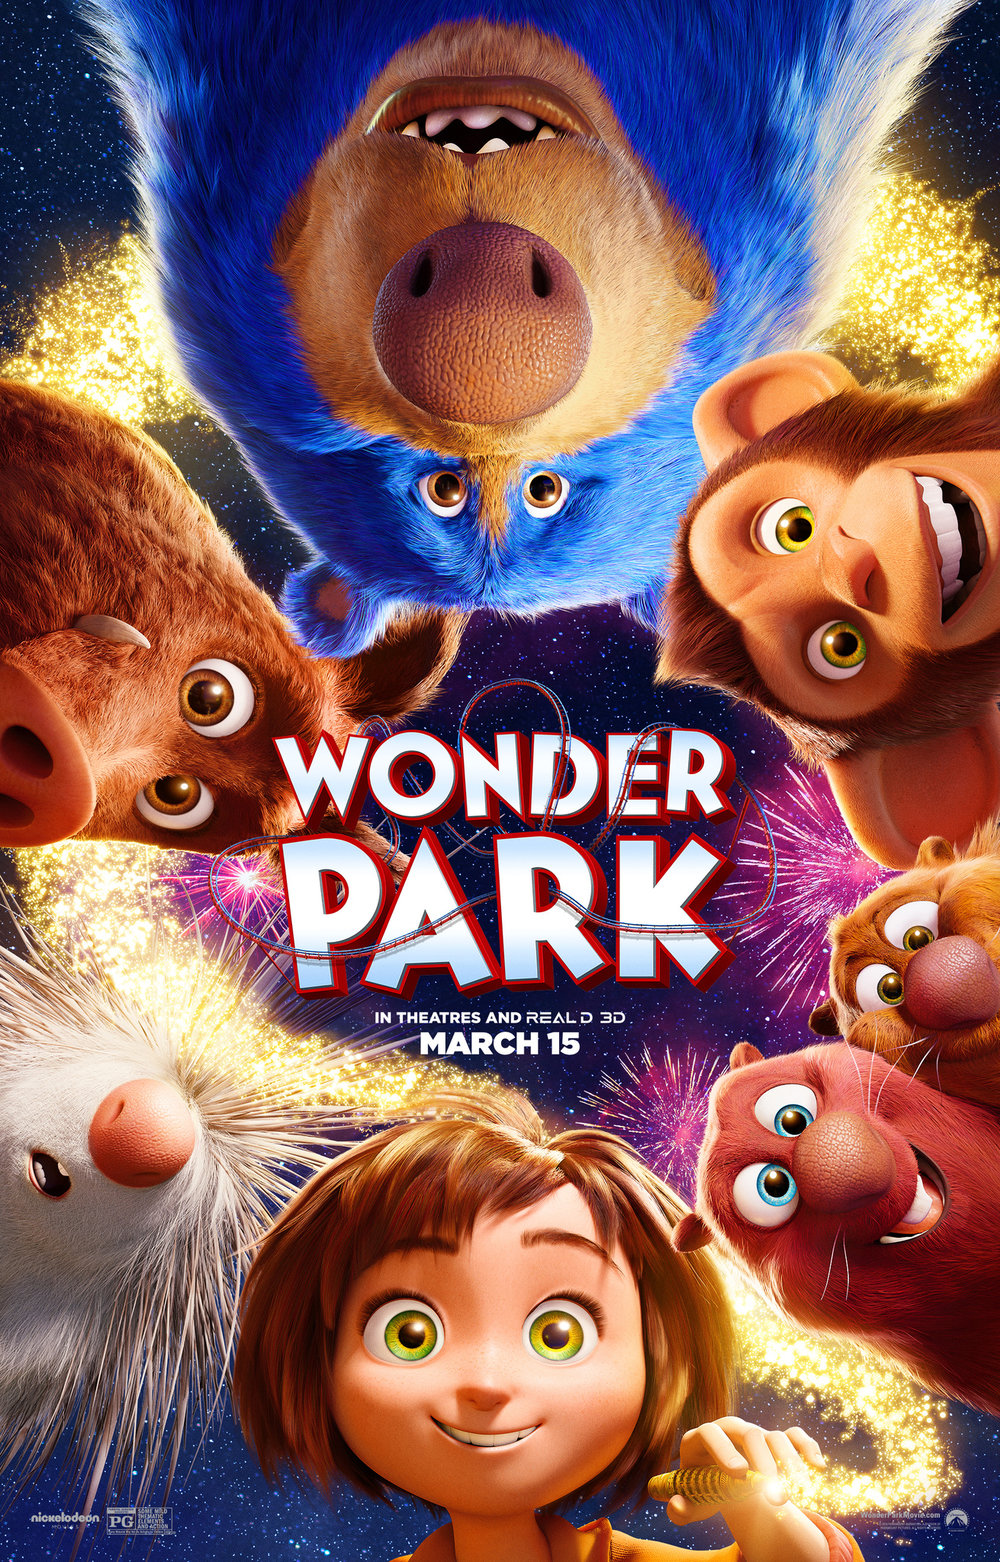 wonder-park-3d-movie.JPG